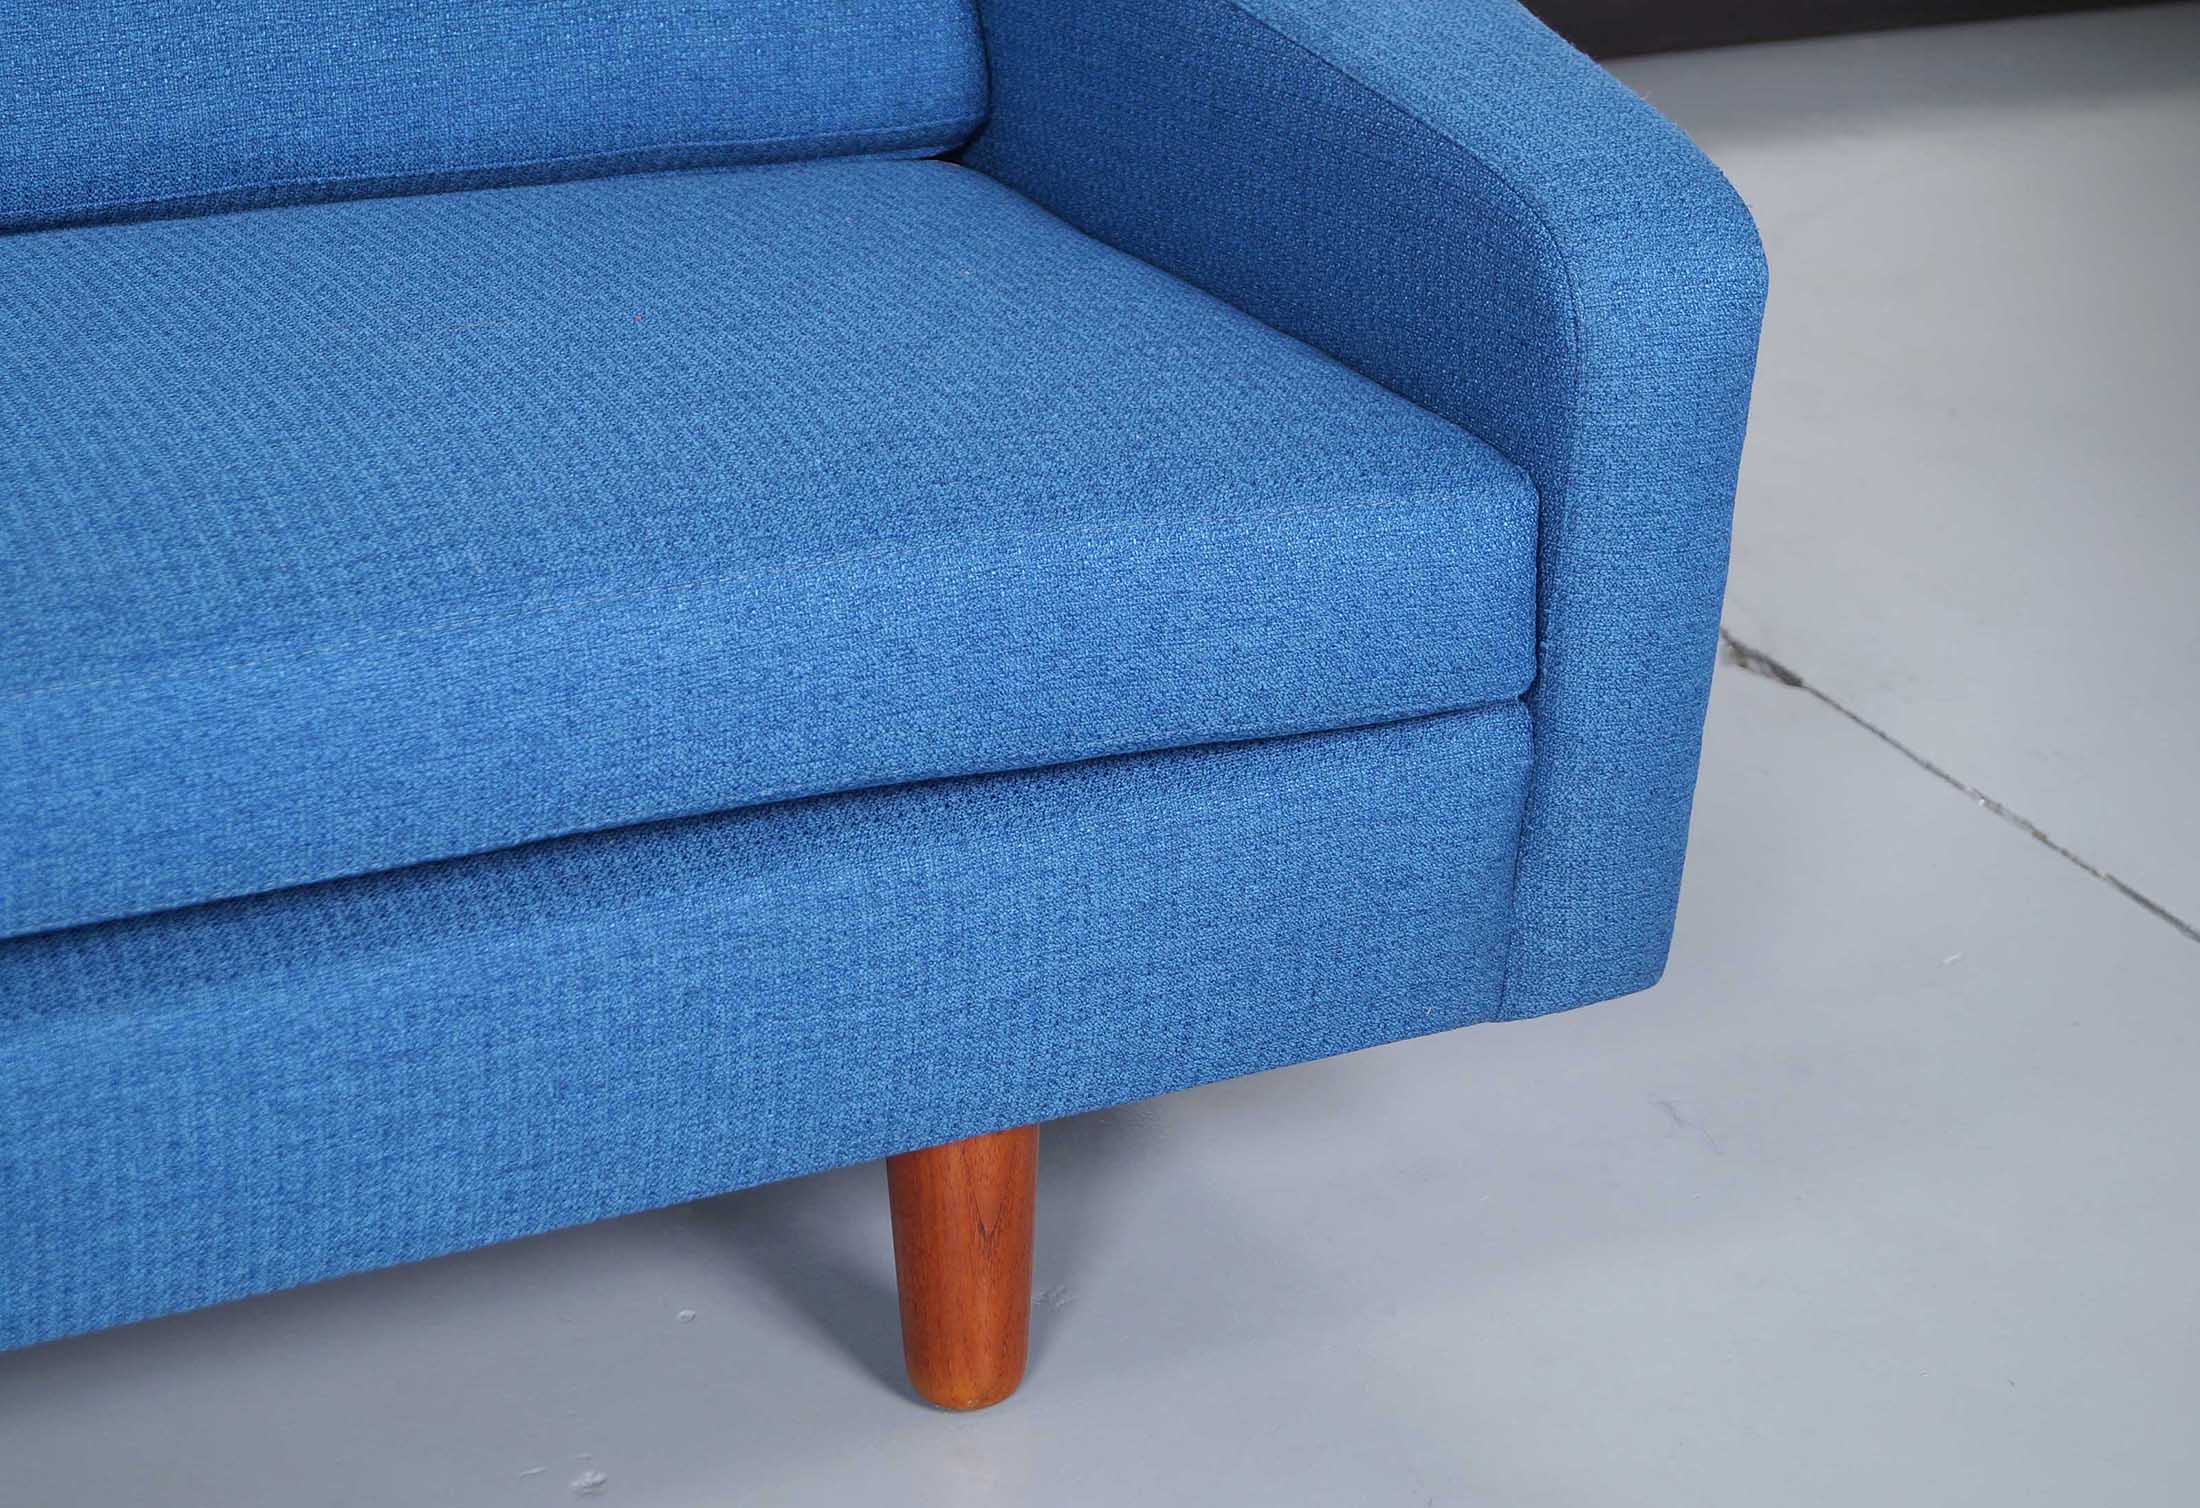 Danish Modern Sofa by Illums Bolighus